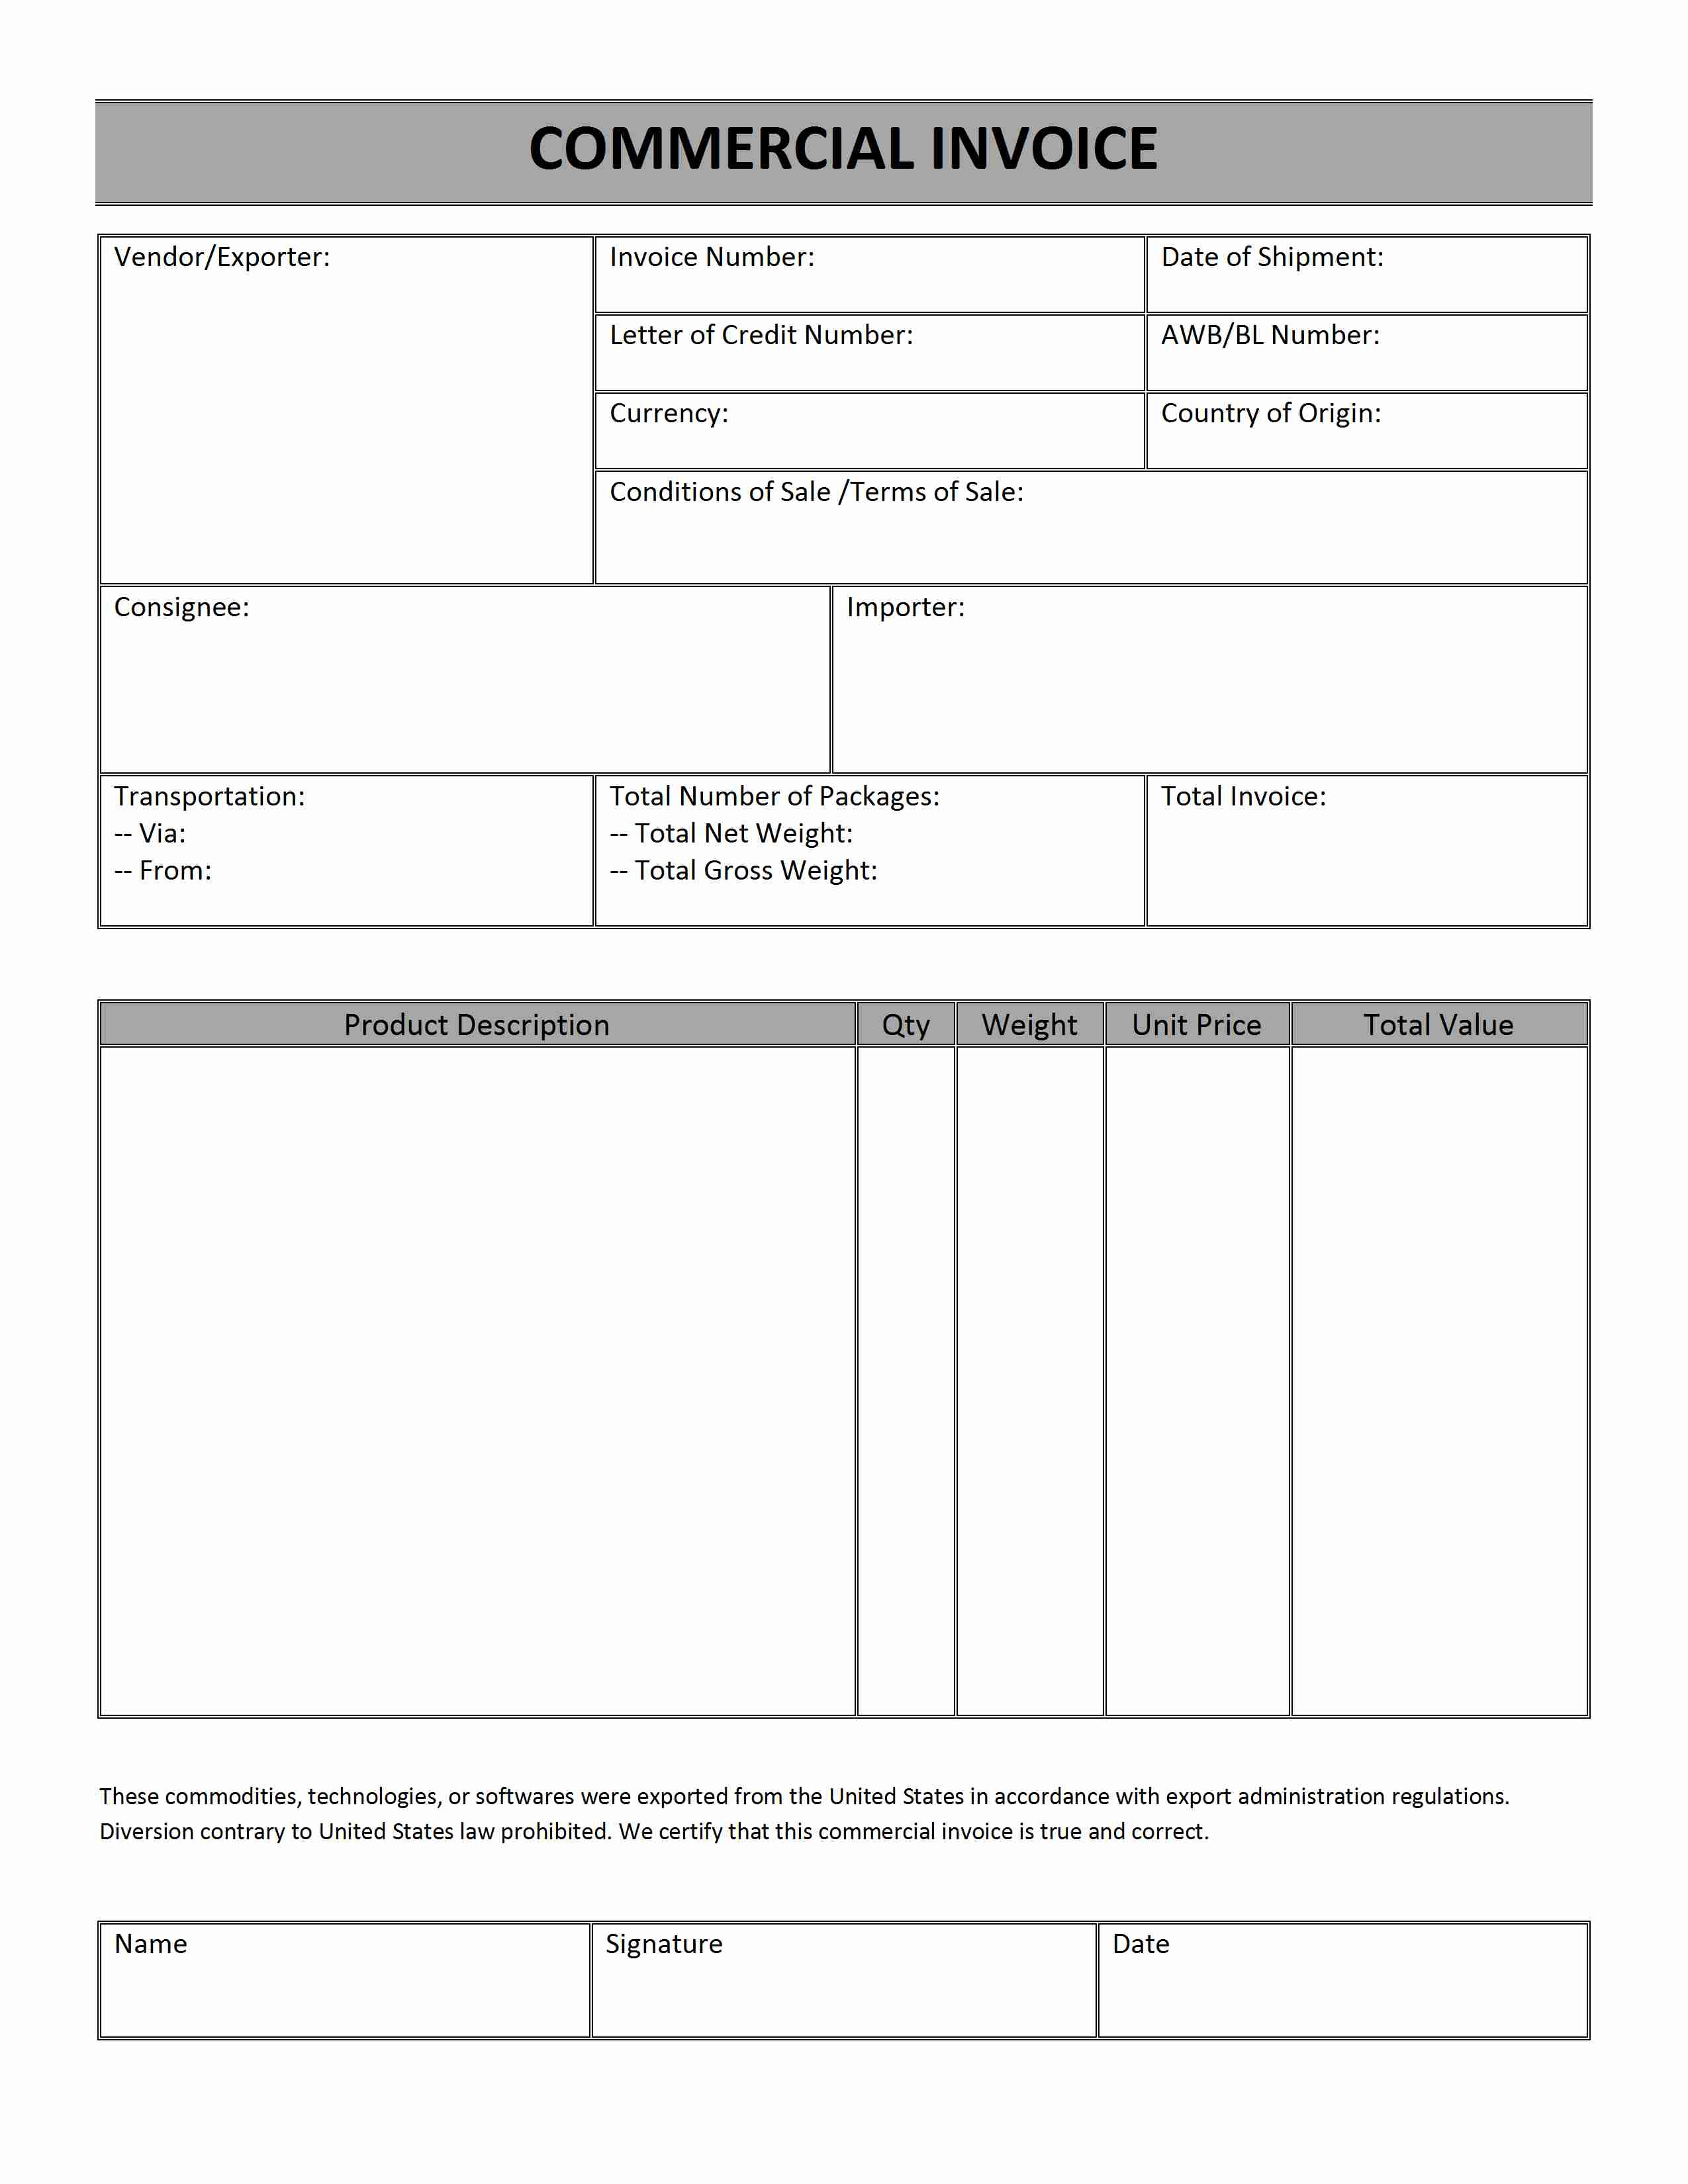 Darkfaderus  Stunning Printable Sales Invoice Simple Invoice Form Free Invoice  With Heavenly Printable Receipt Free  Free Printable Raffle Tickets  Receipt   Printable With Appealing Goodwill Donation Receipt Builder Also Payment Receipt Sample In Addition Best Receipt Tracking App And Construction Receipt As Well As Food Receipts Additionally Kohls Return Without Receipt From Happytomco With Darkfaderus  Heavenly Printable Sales Invoice Simple Invoice Form Free Invoice  With Appealing Printable Receipt Free  Free Printable Raffle Tickets  Receipt   Printable And Stunning Goodwill Donation Receipt Builder Also Payment Receipt Sample In Addition Best Receipt Tracking App From Happytomco